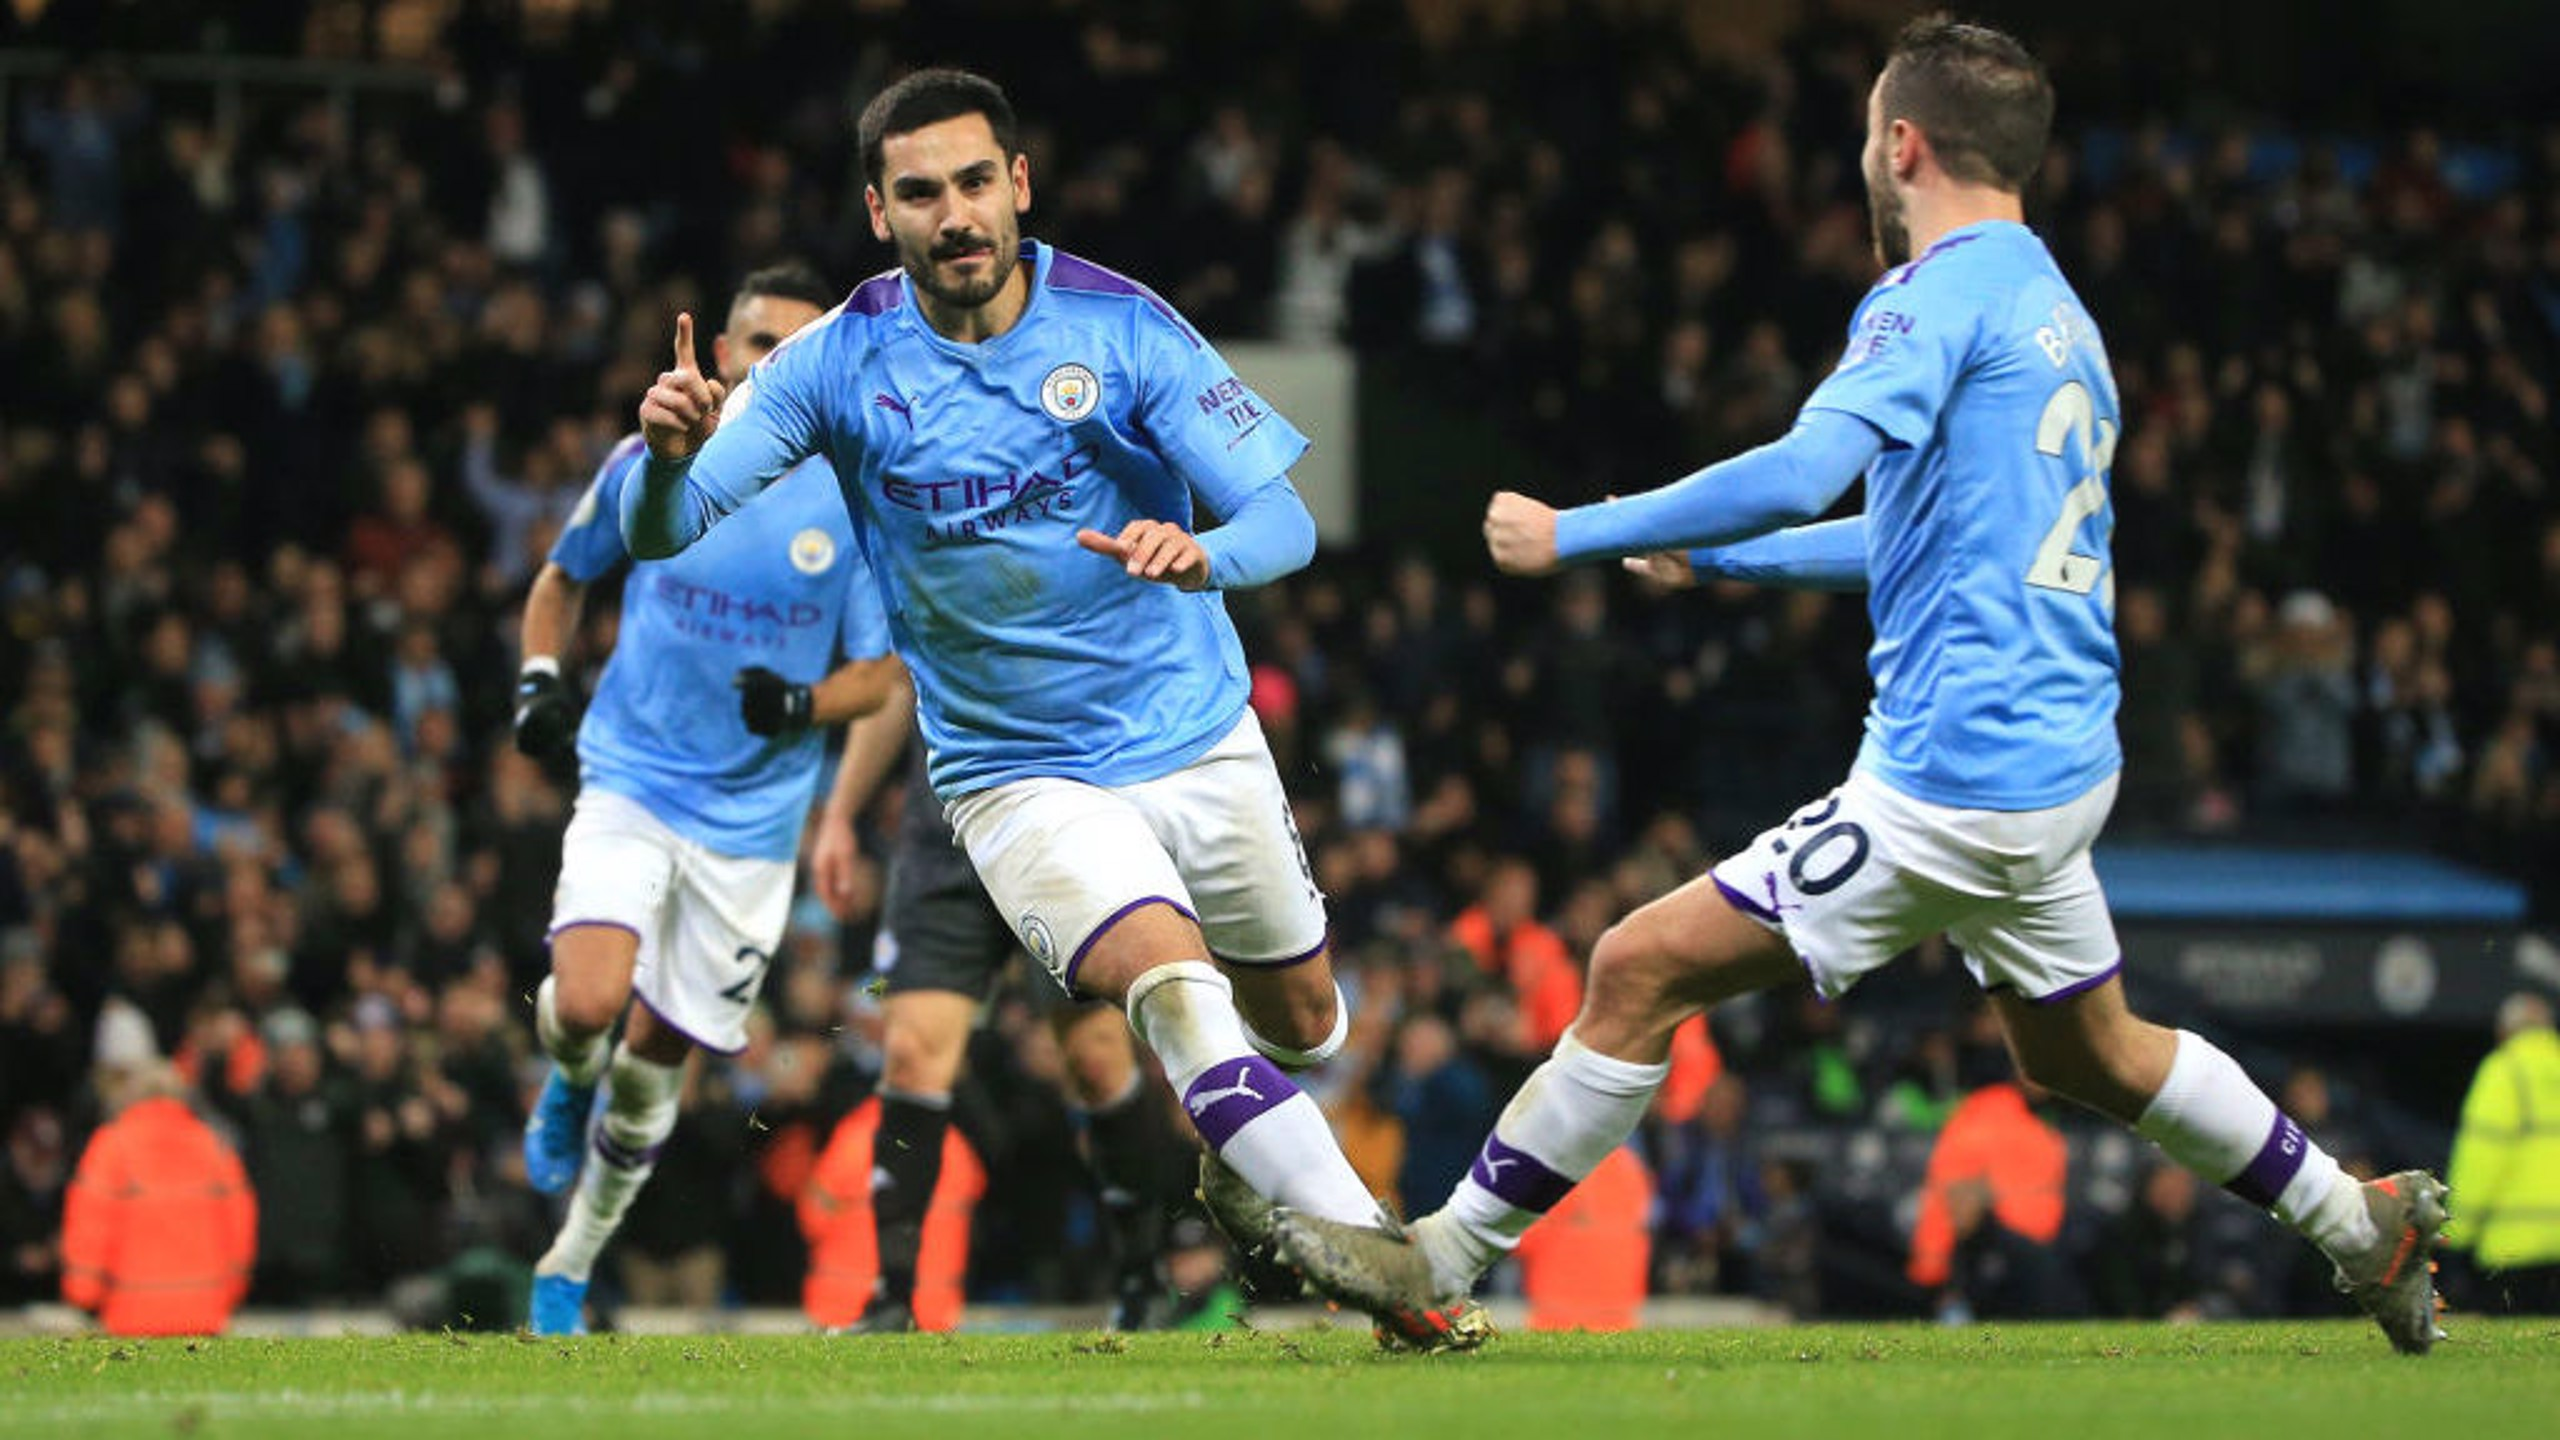 BACK OF THE NET: Gundogan wheels away to celebrate his successful spot kick.